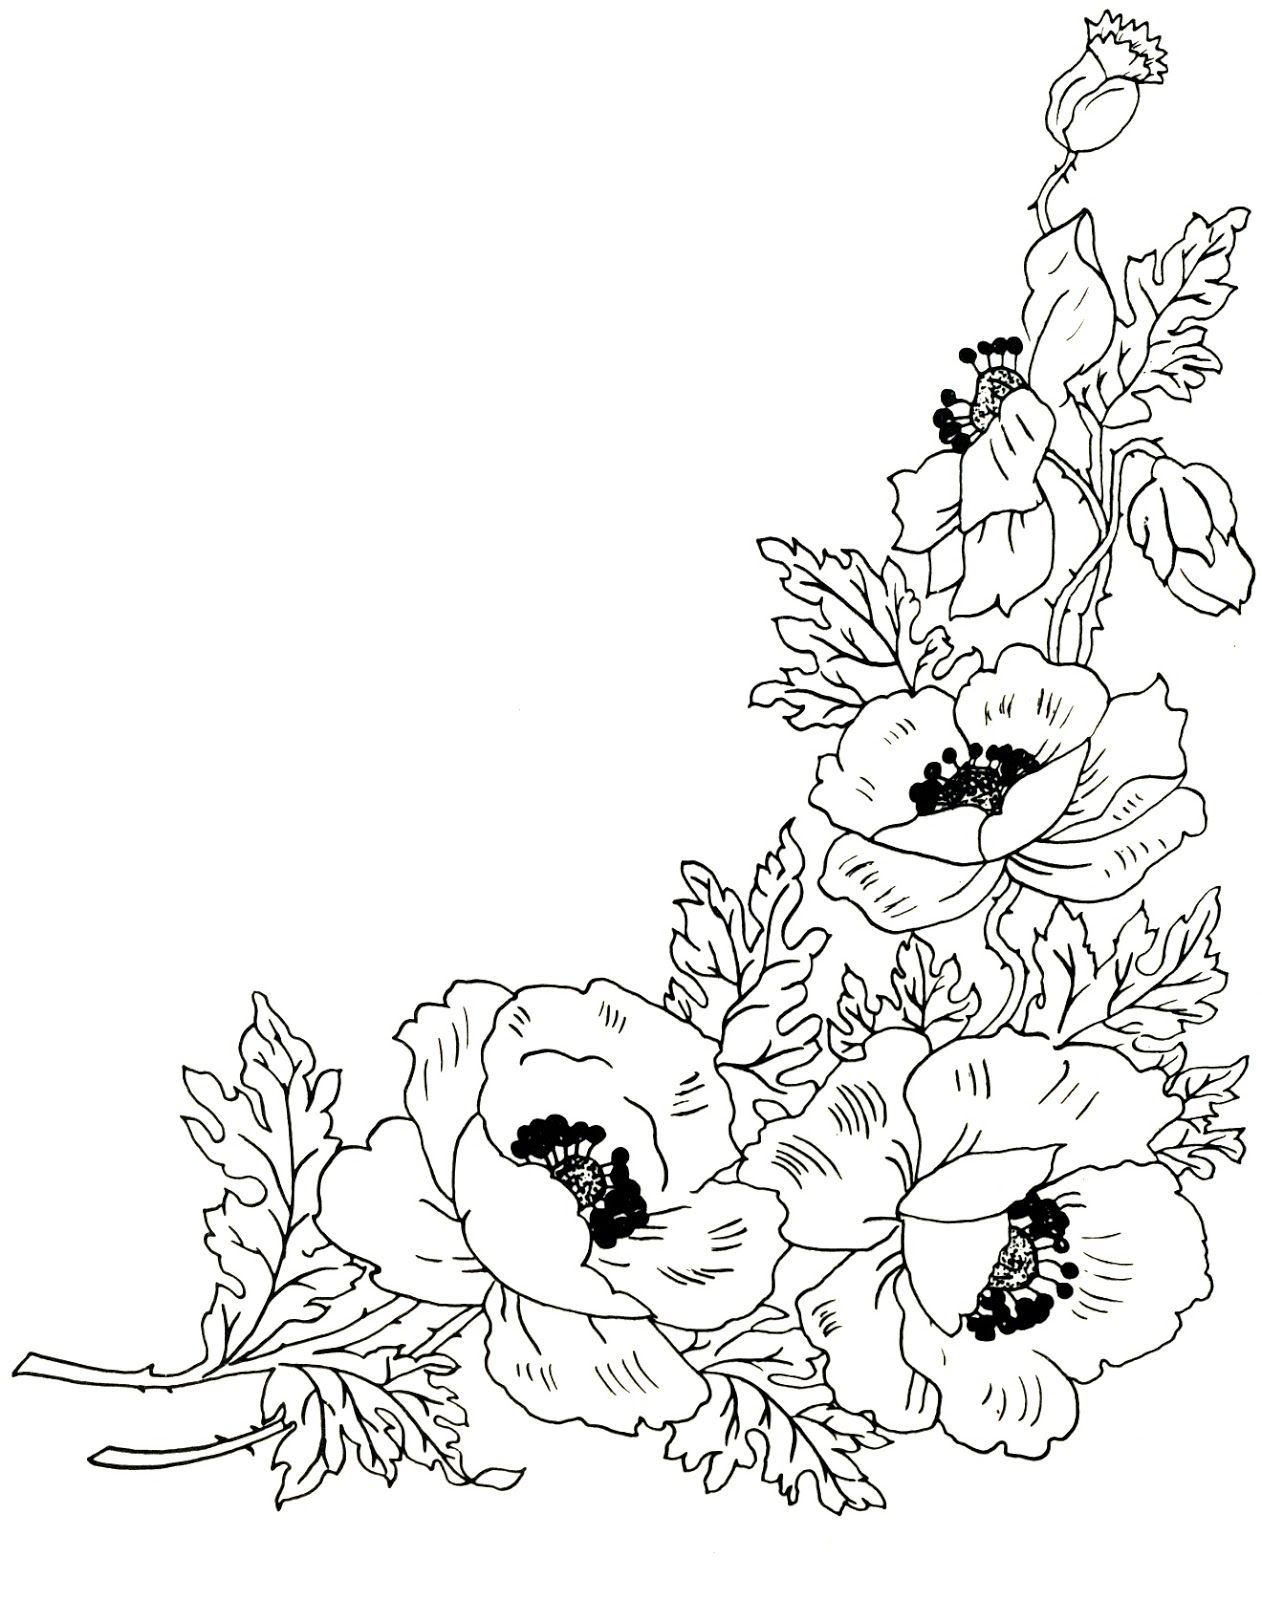 to print this free coloring page coloring difficult